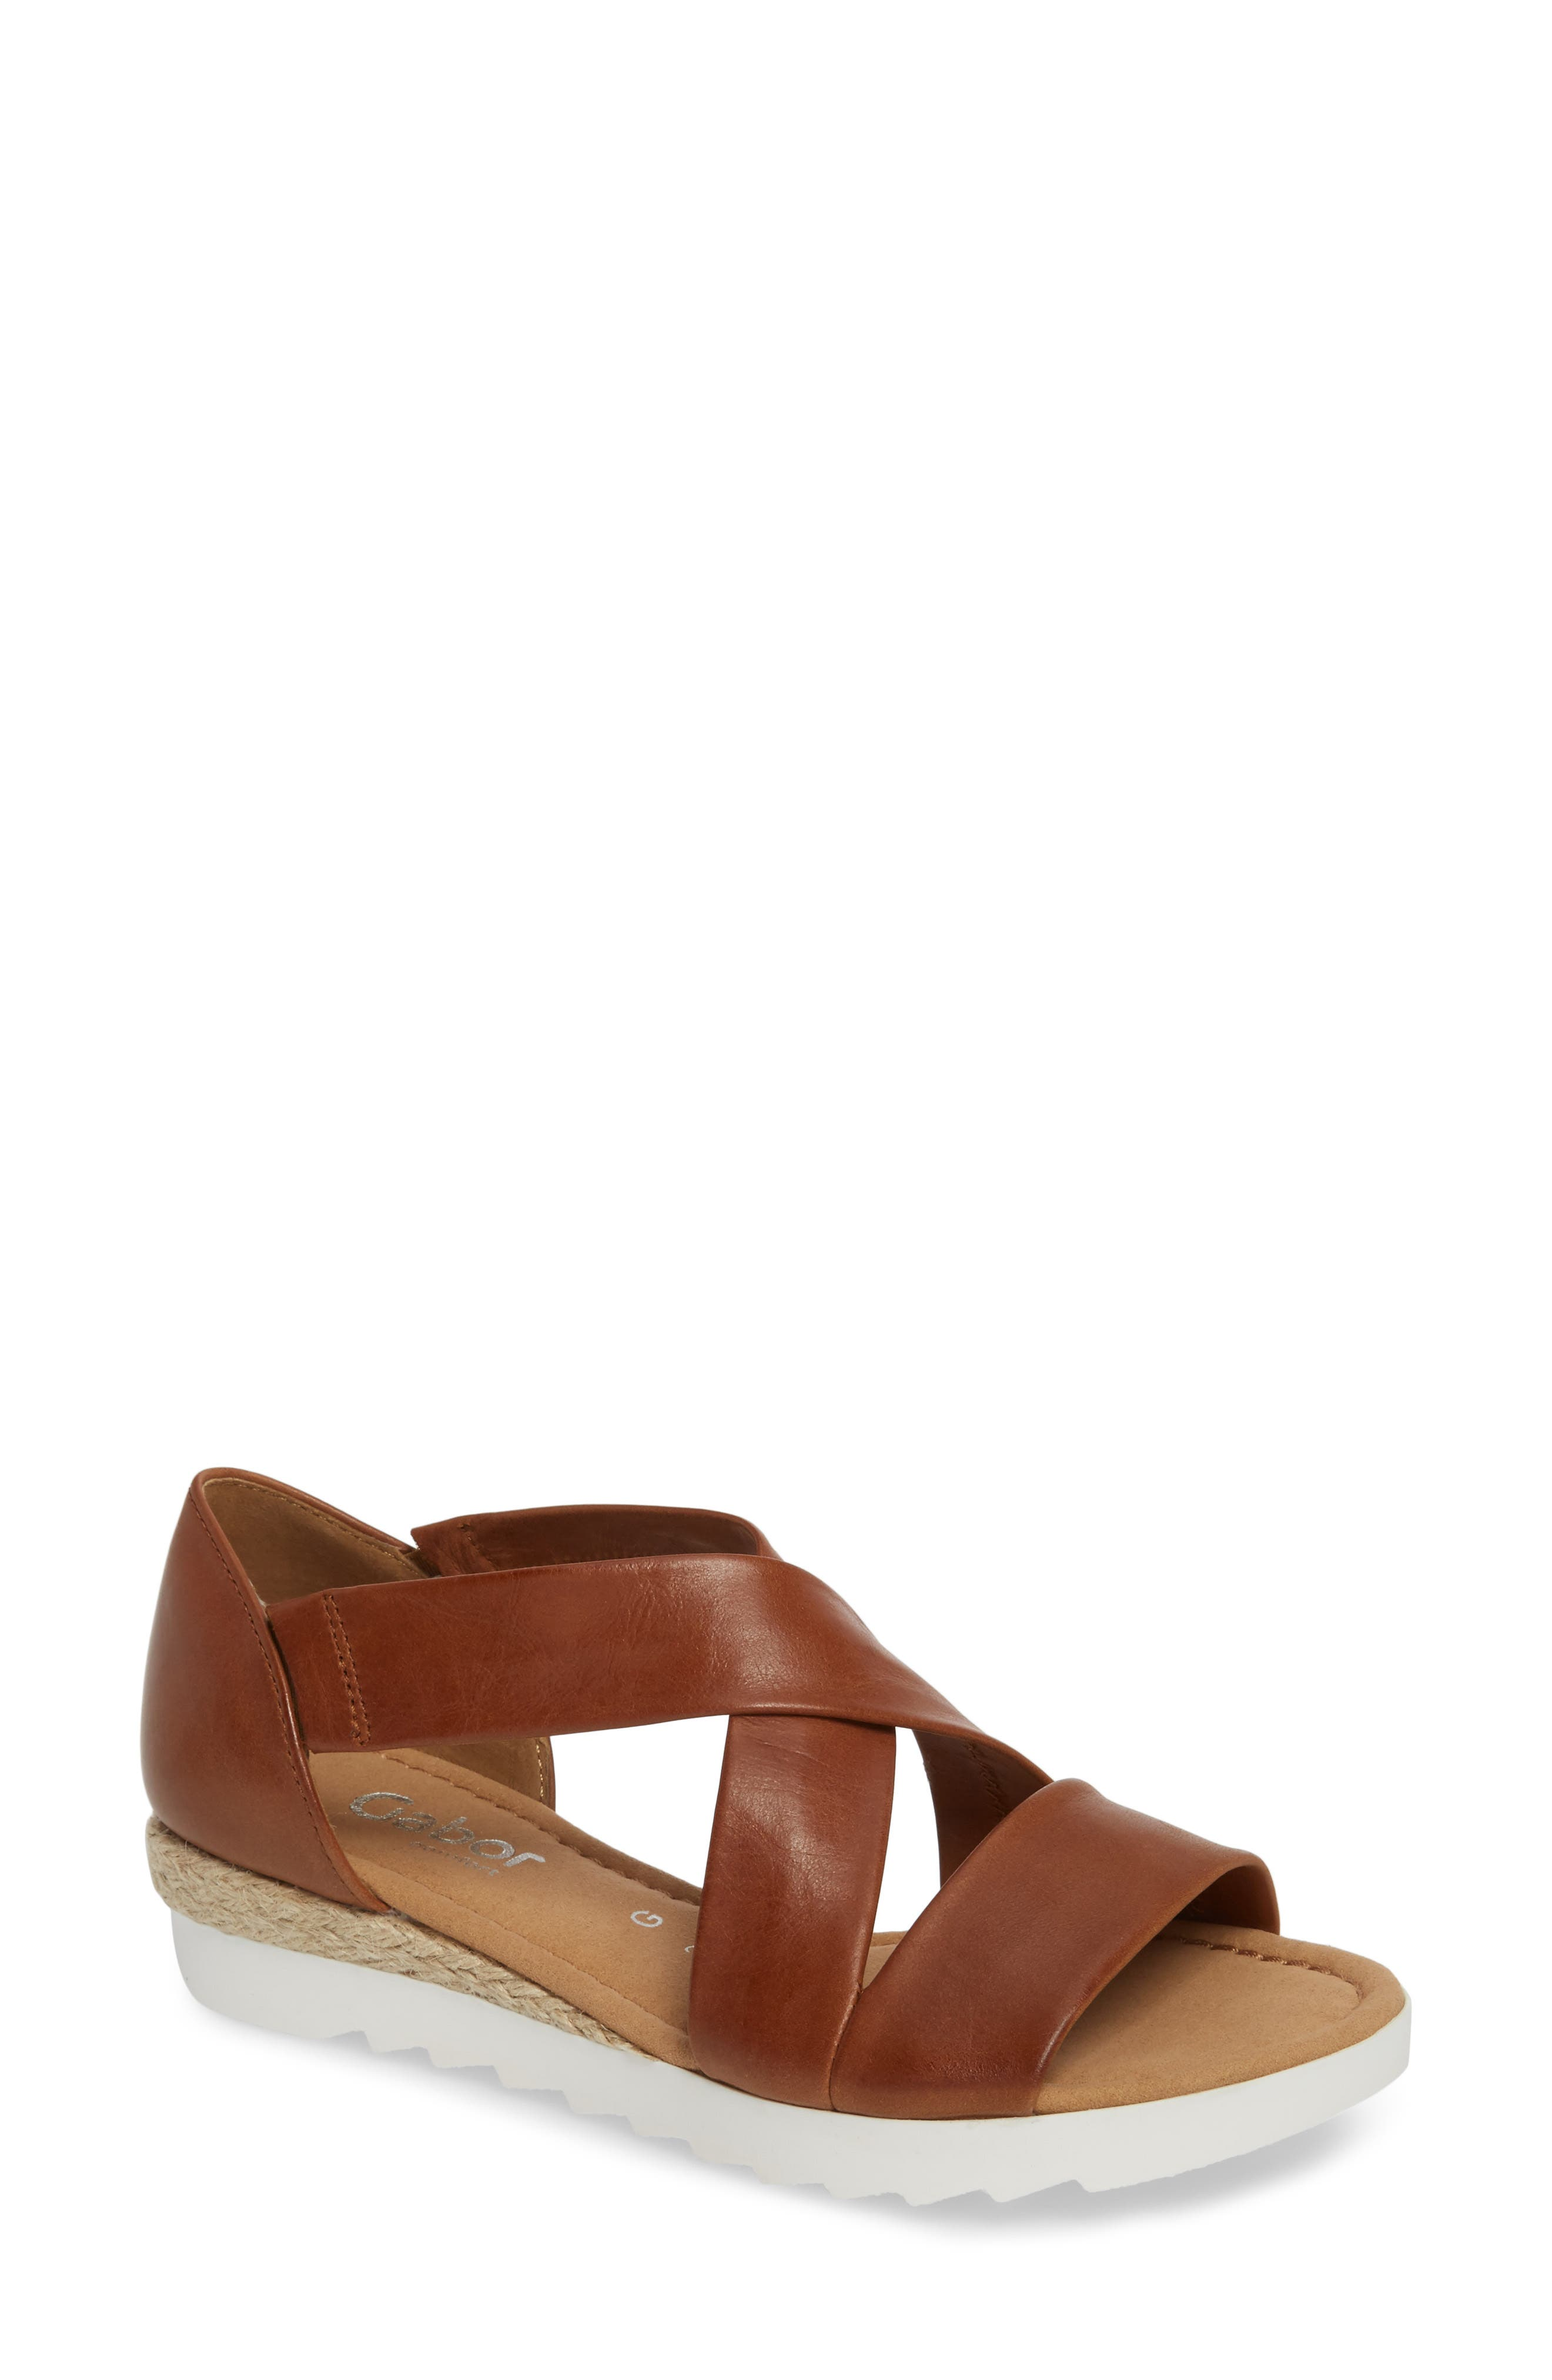 Cross Strap Sandal,                         Main,                         color, Brown Leather